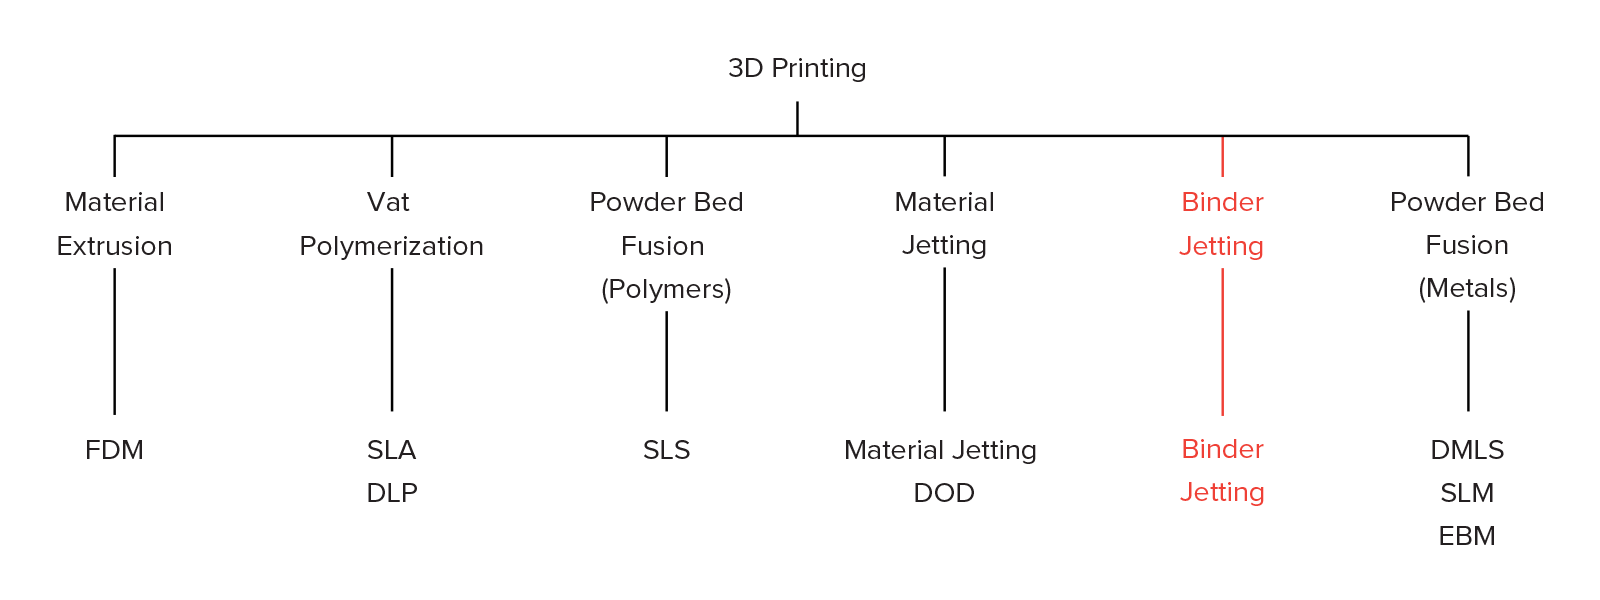 Introduction to Binder Jetting 3D printing | 3D Hubs